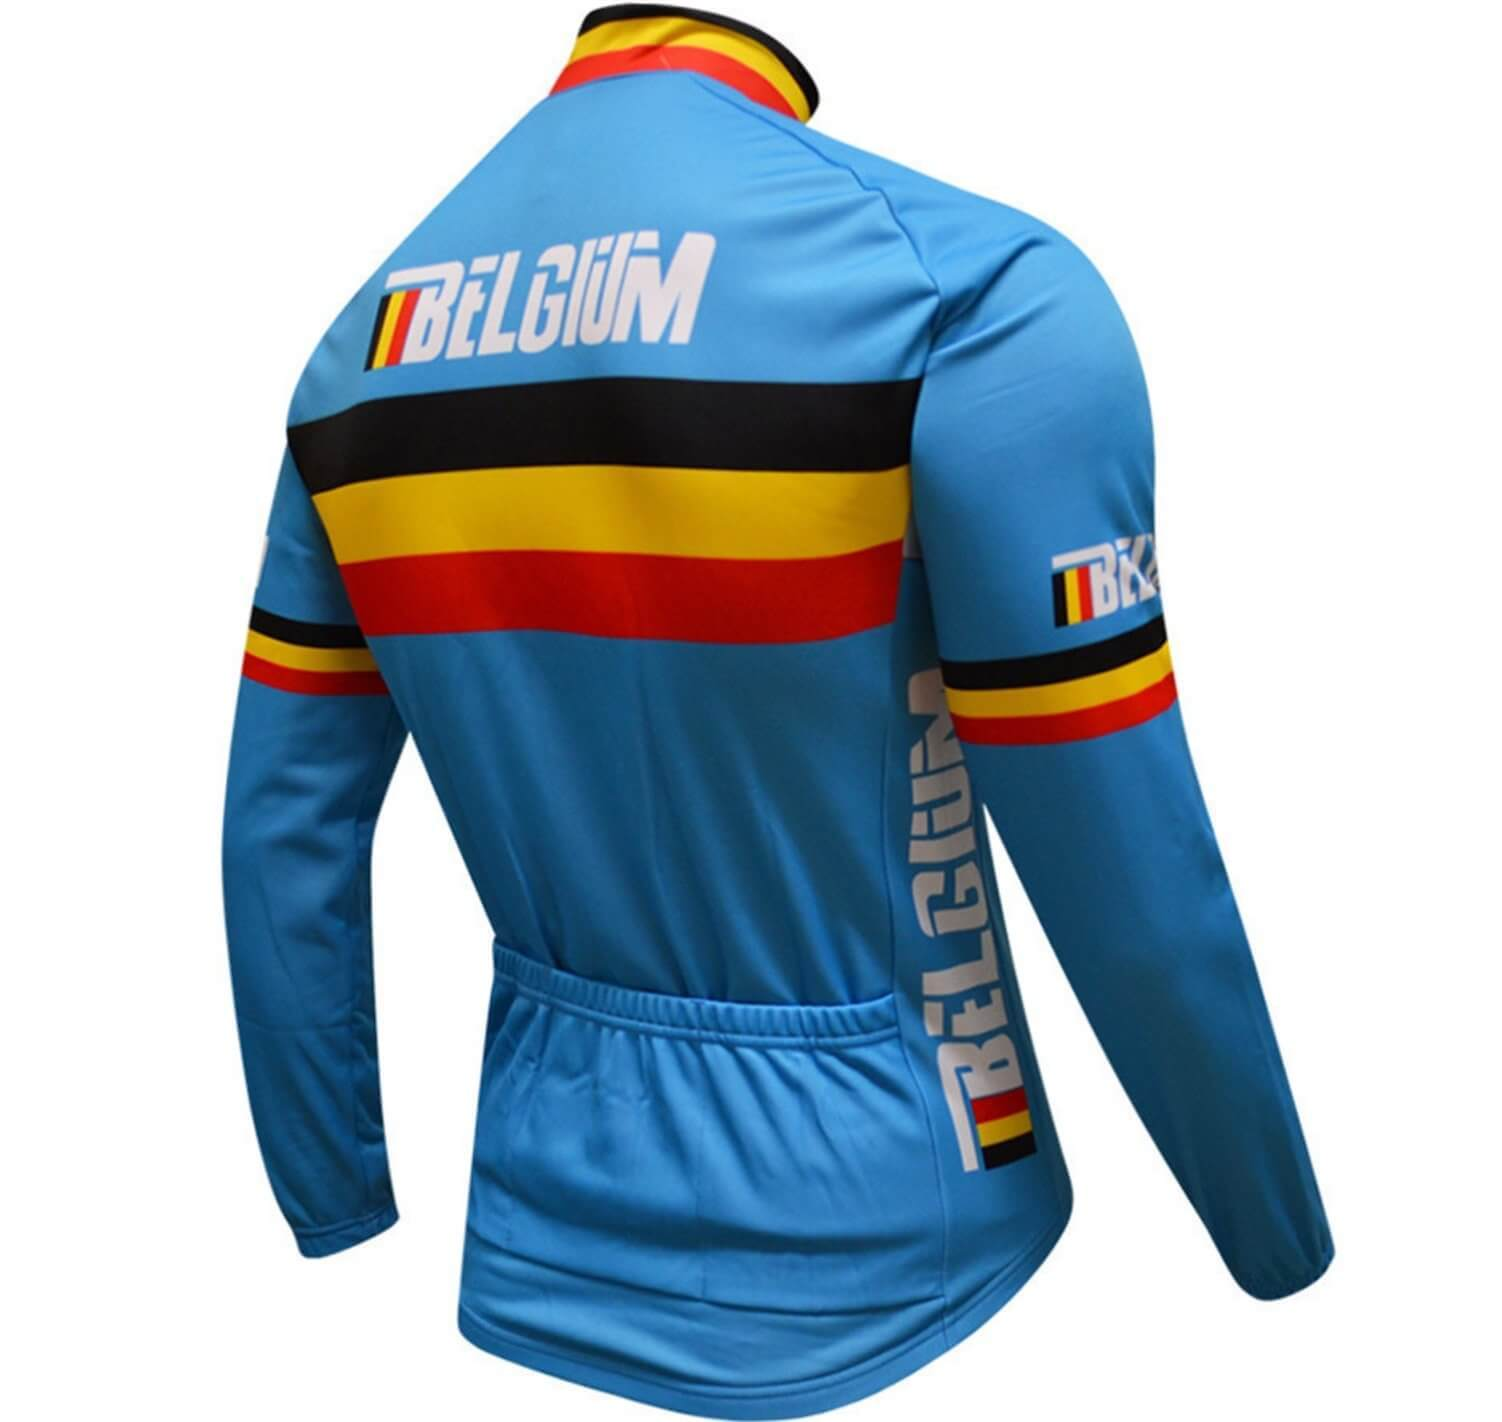 Belgian National Cycling Jersey - Jersey Champs